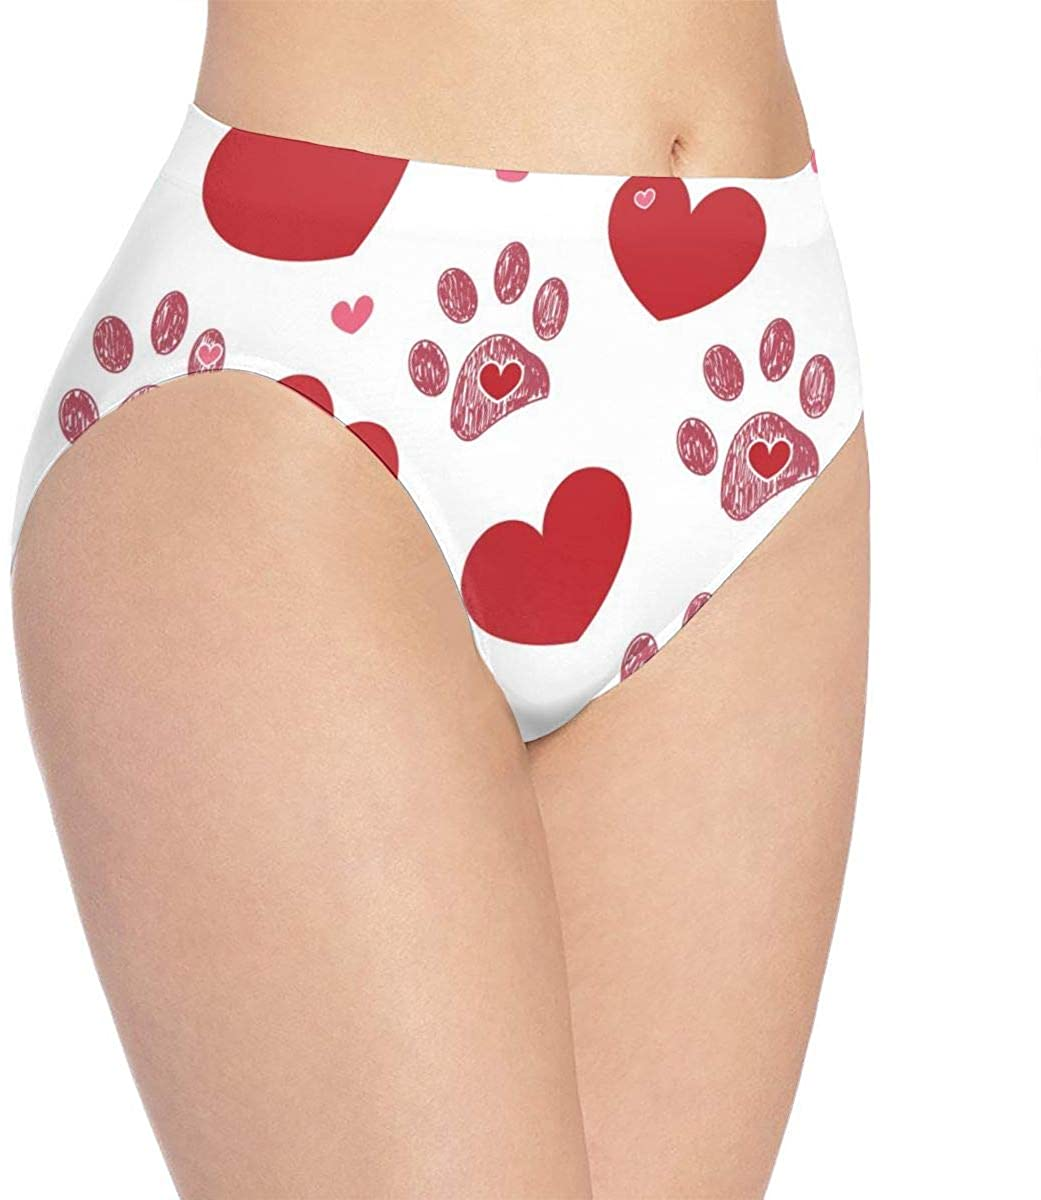 Womens Invisibles Hipster Panty,Dog Paw Print with Hearts Panties Breathable Stretchy Low Waist Briefs,for Teens Women